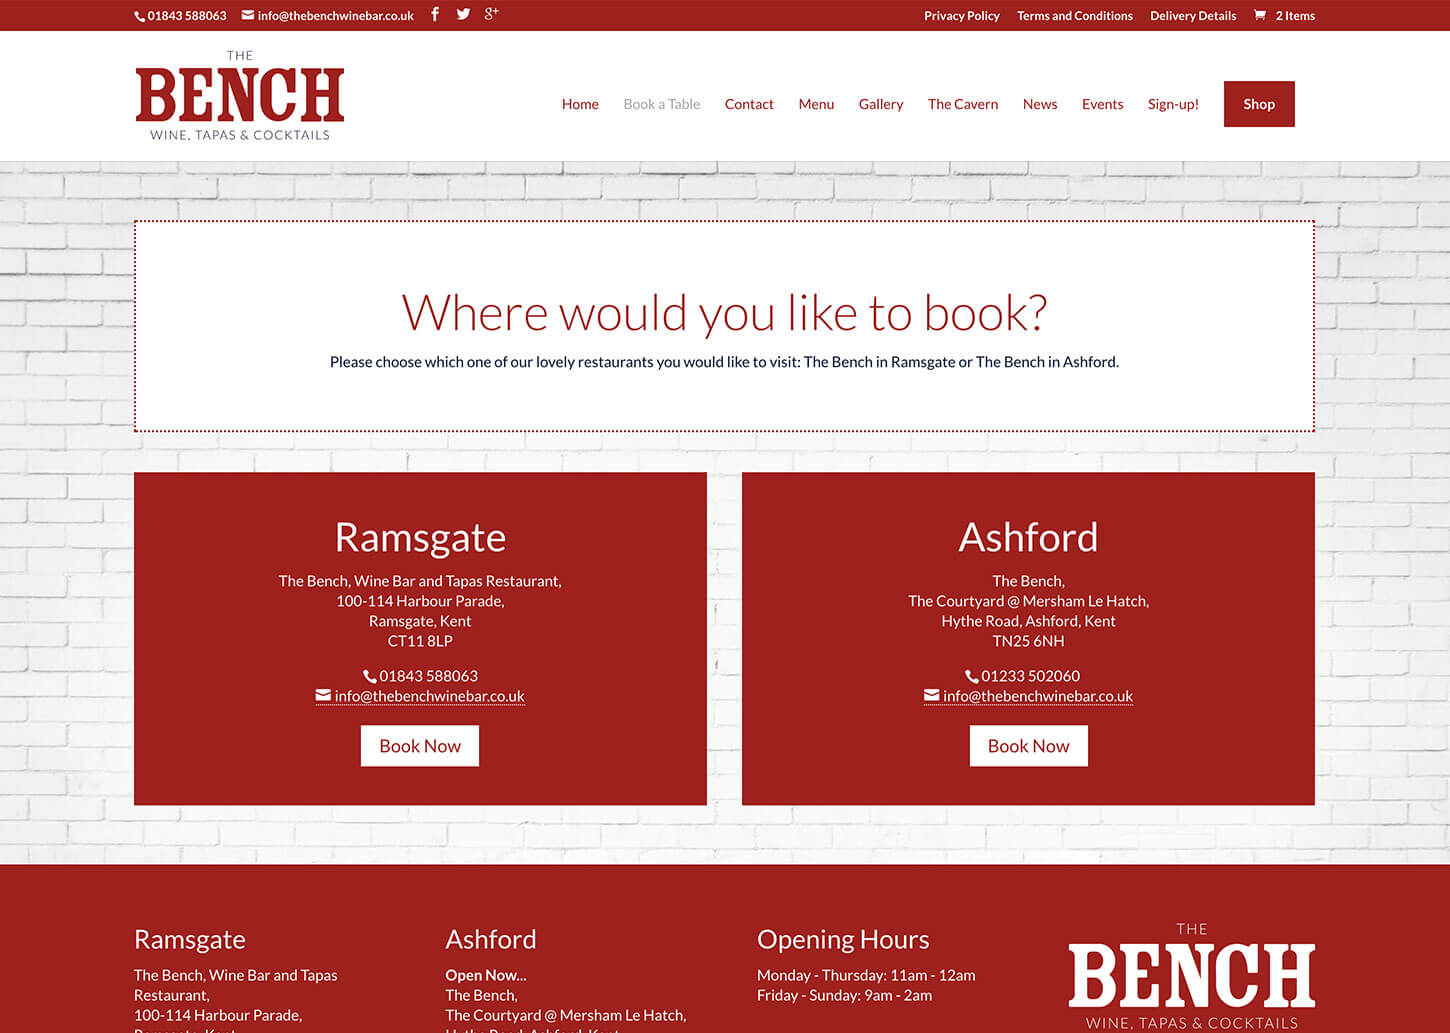 The Bench Restaurant website design - Booking page